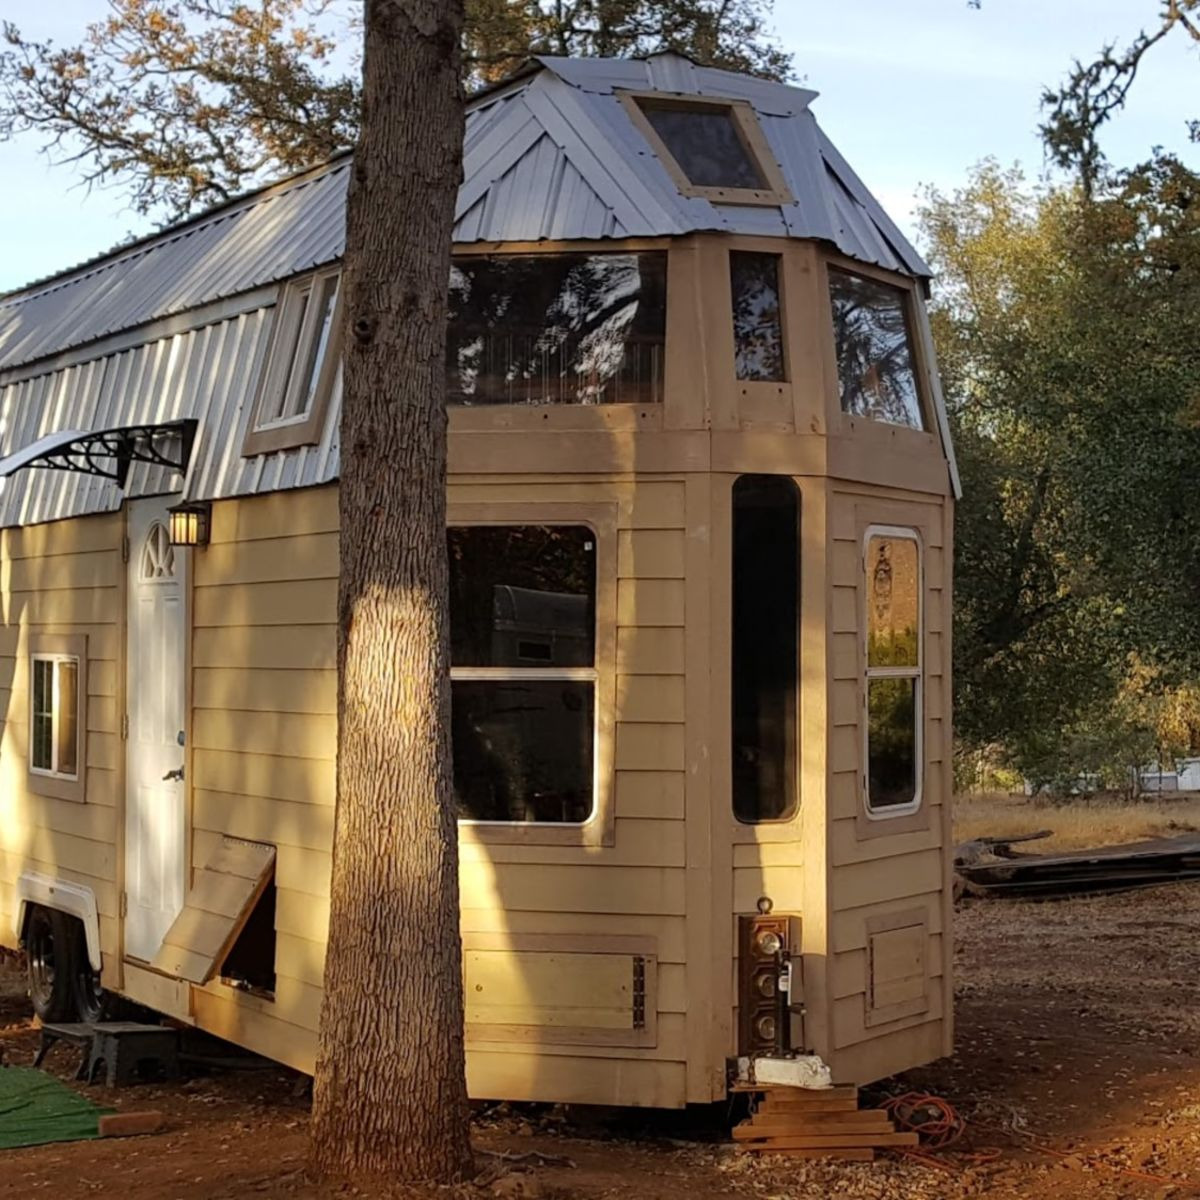 QUANTUM HOUSE on Wheels or Foundation. (We Deliver!) - Tiny House for Sale  in Clearlake Oaks, California - Tiny House Listings